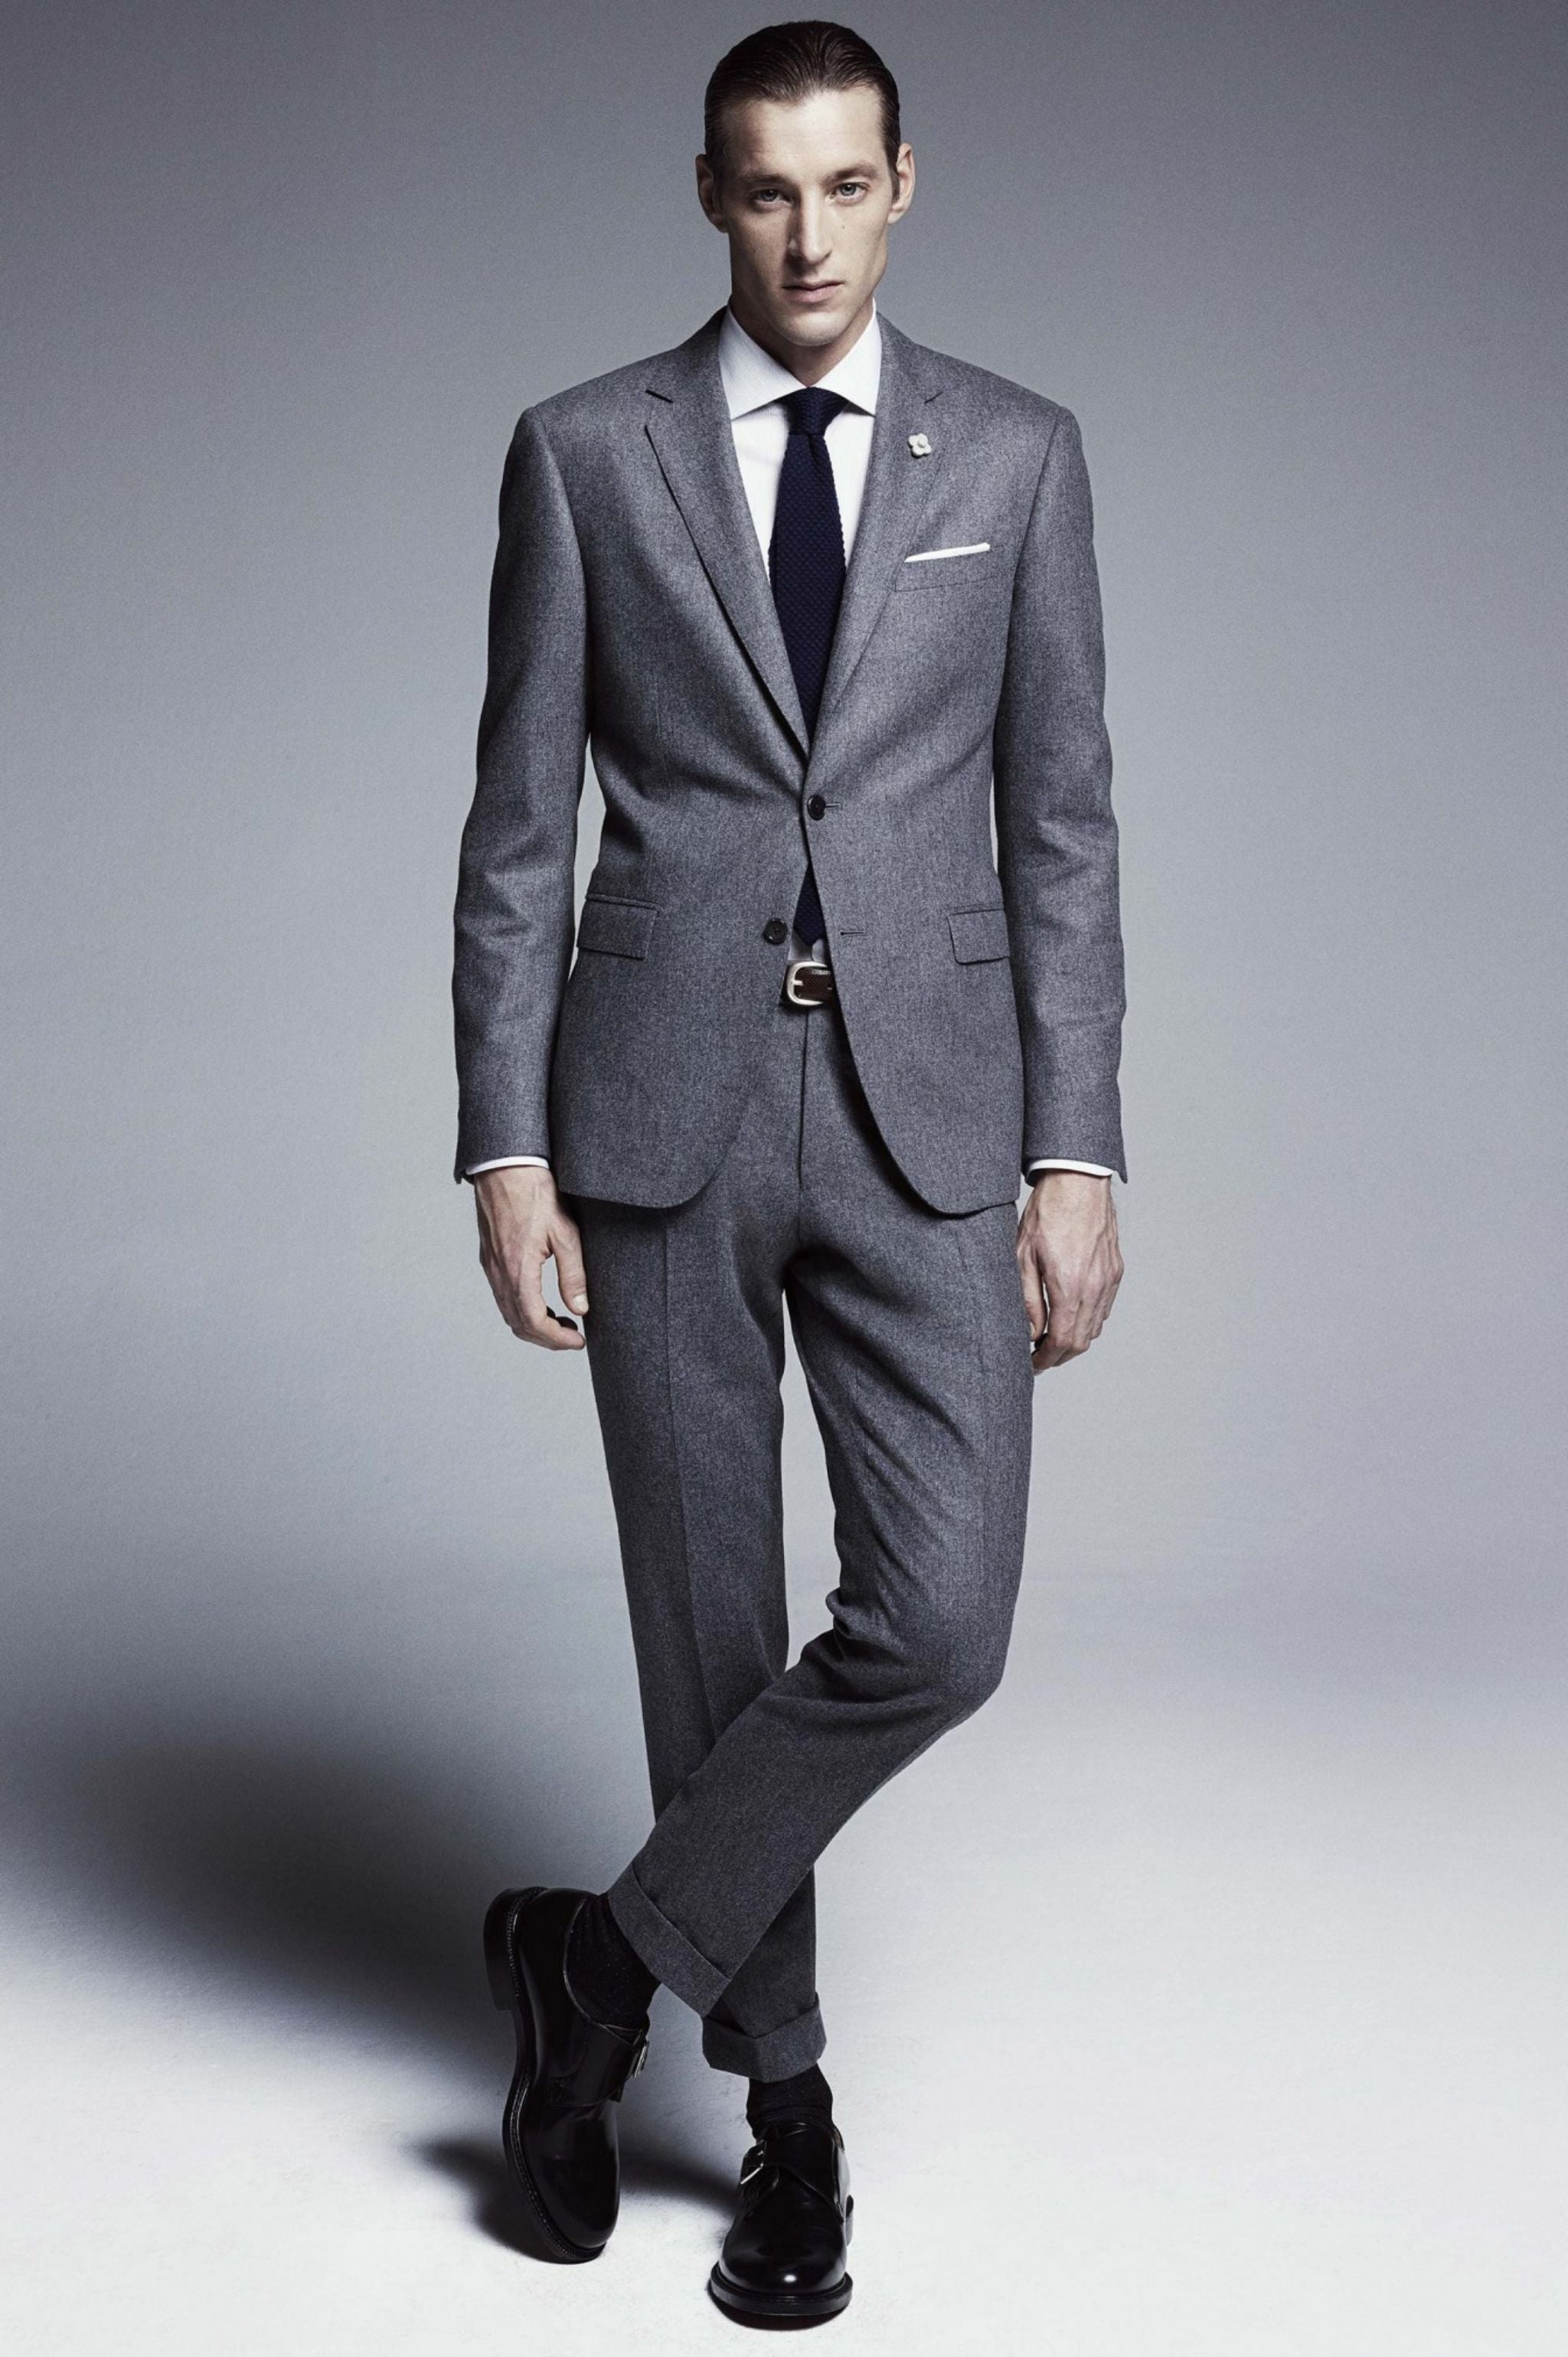 Lardini FW15 - Gray flannel suit with plain toe bluchers